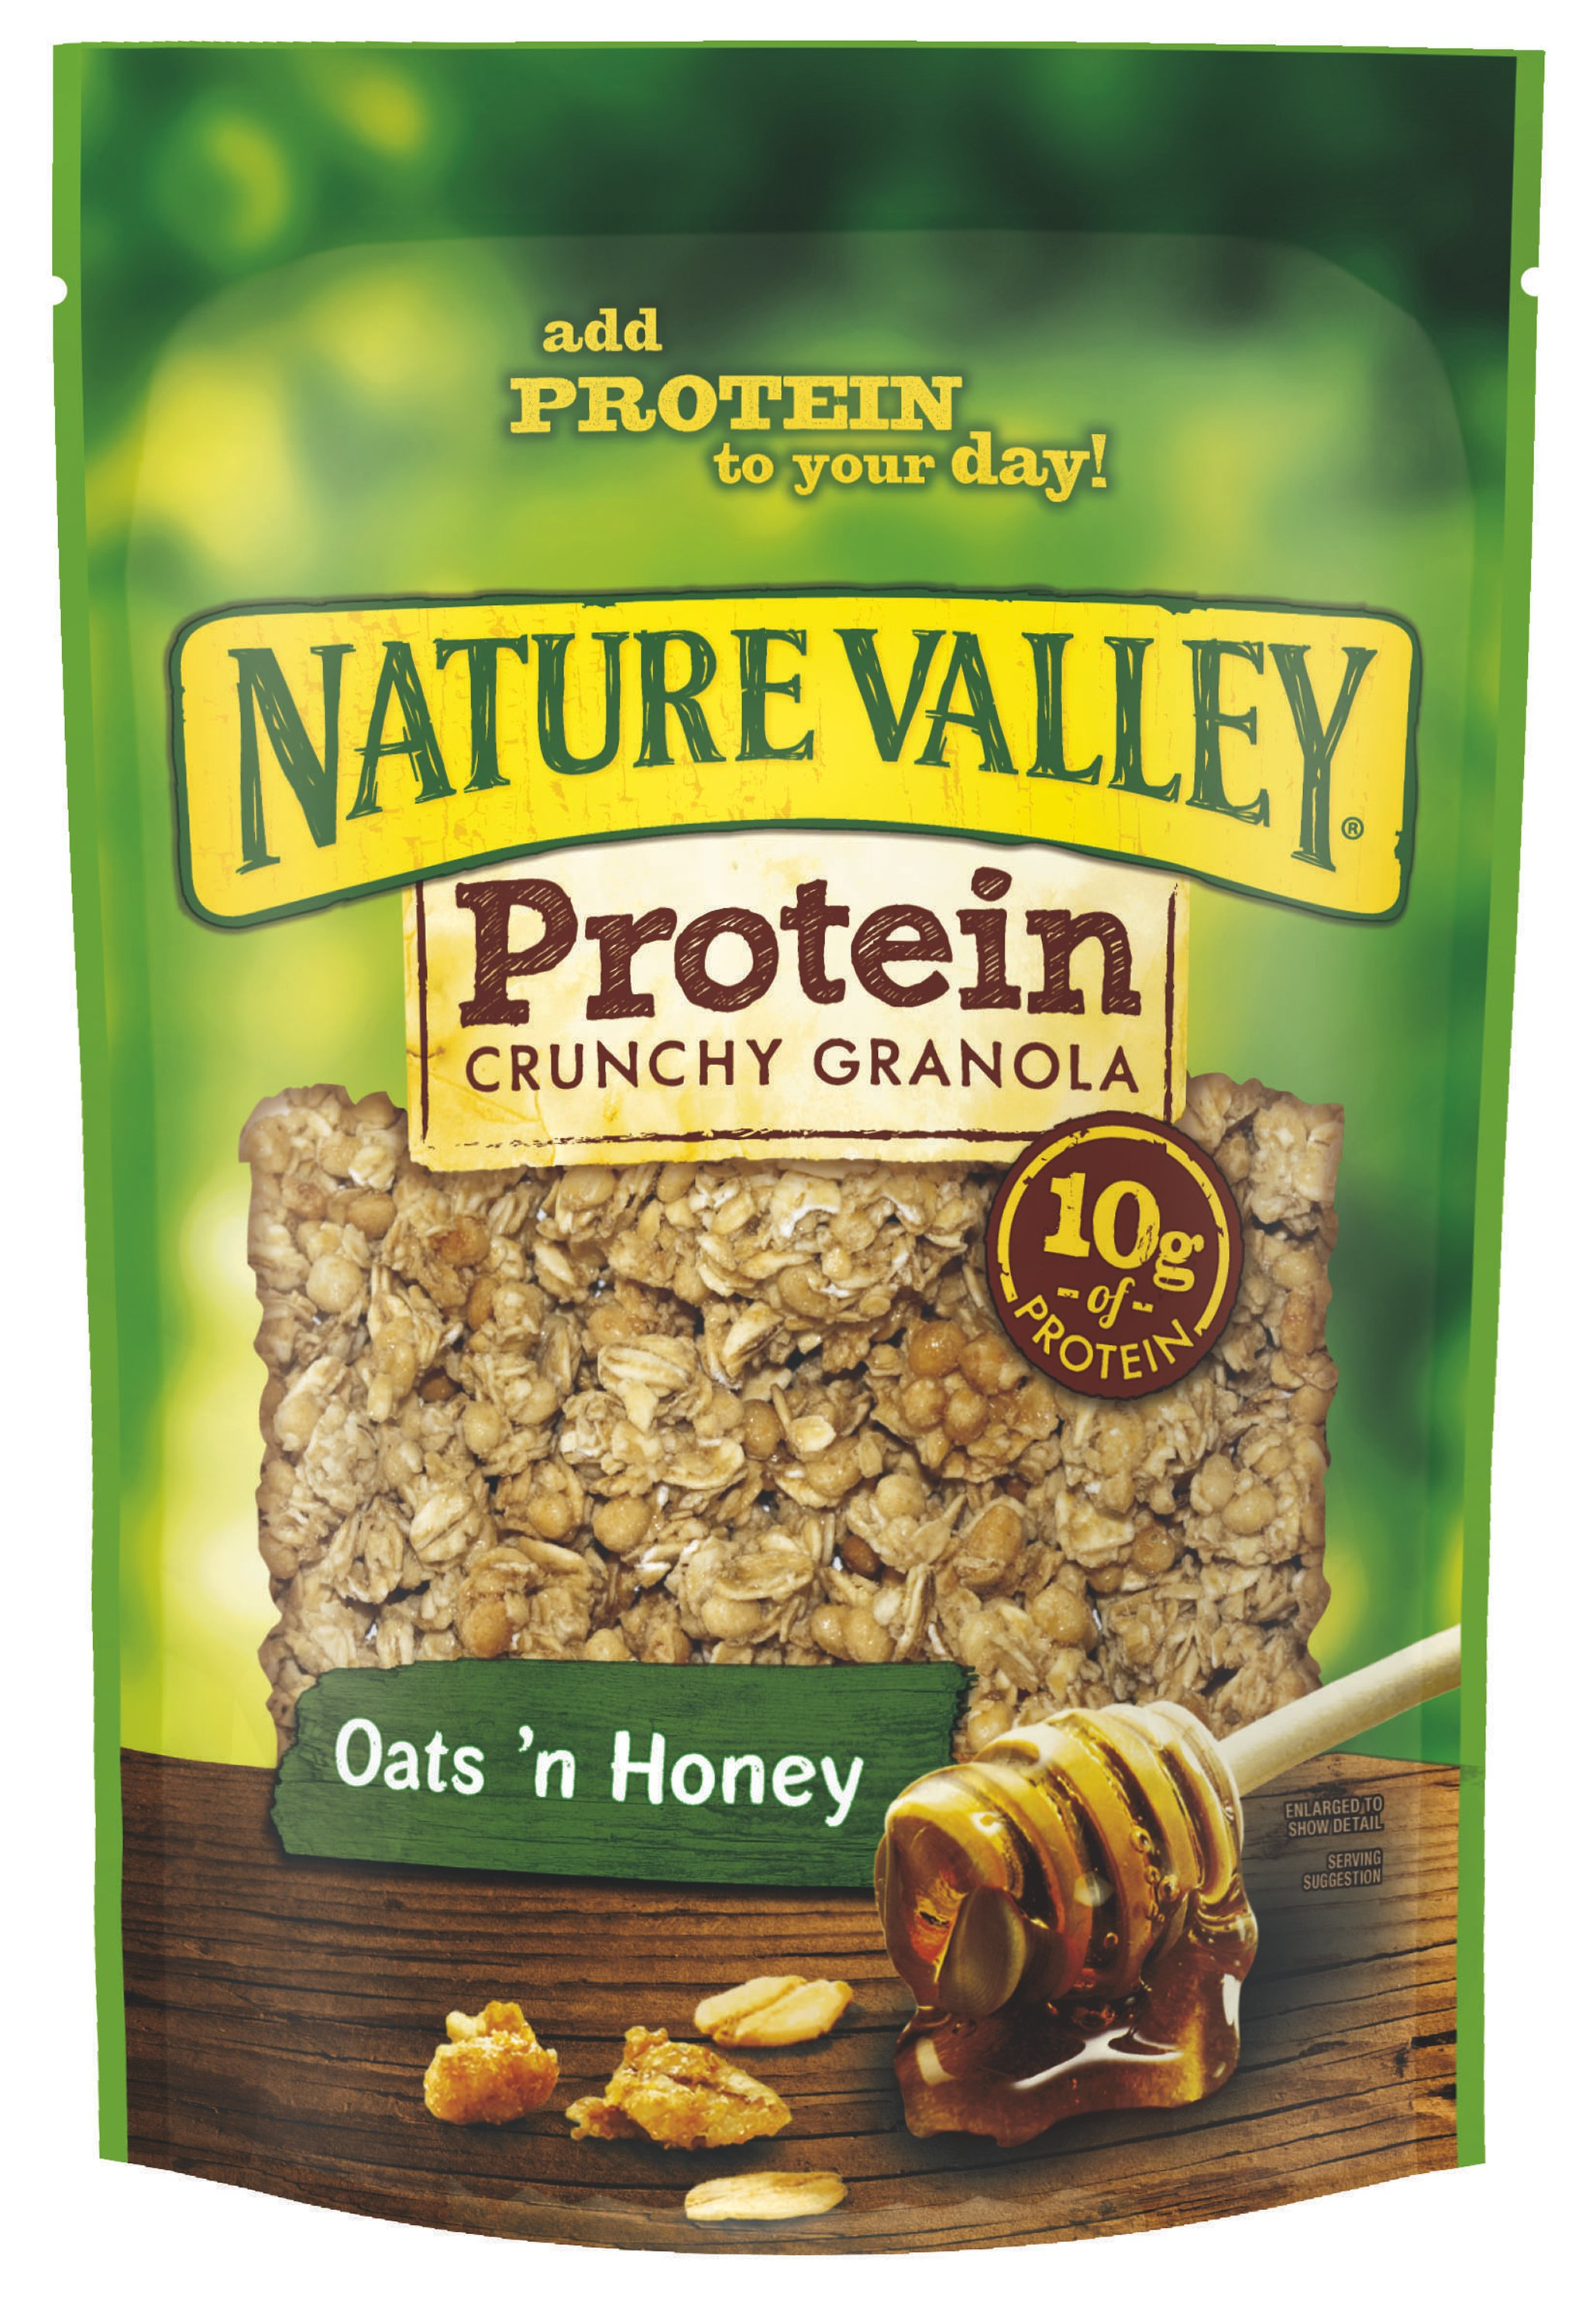 FREE Nature Valley Protein Crunchy Granola at Target